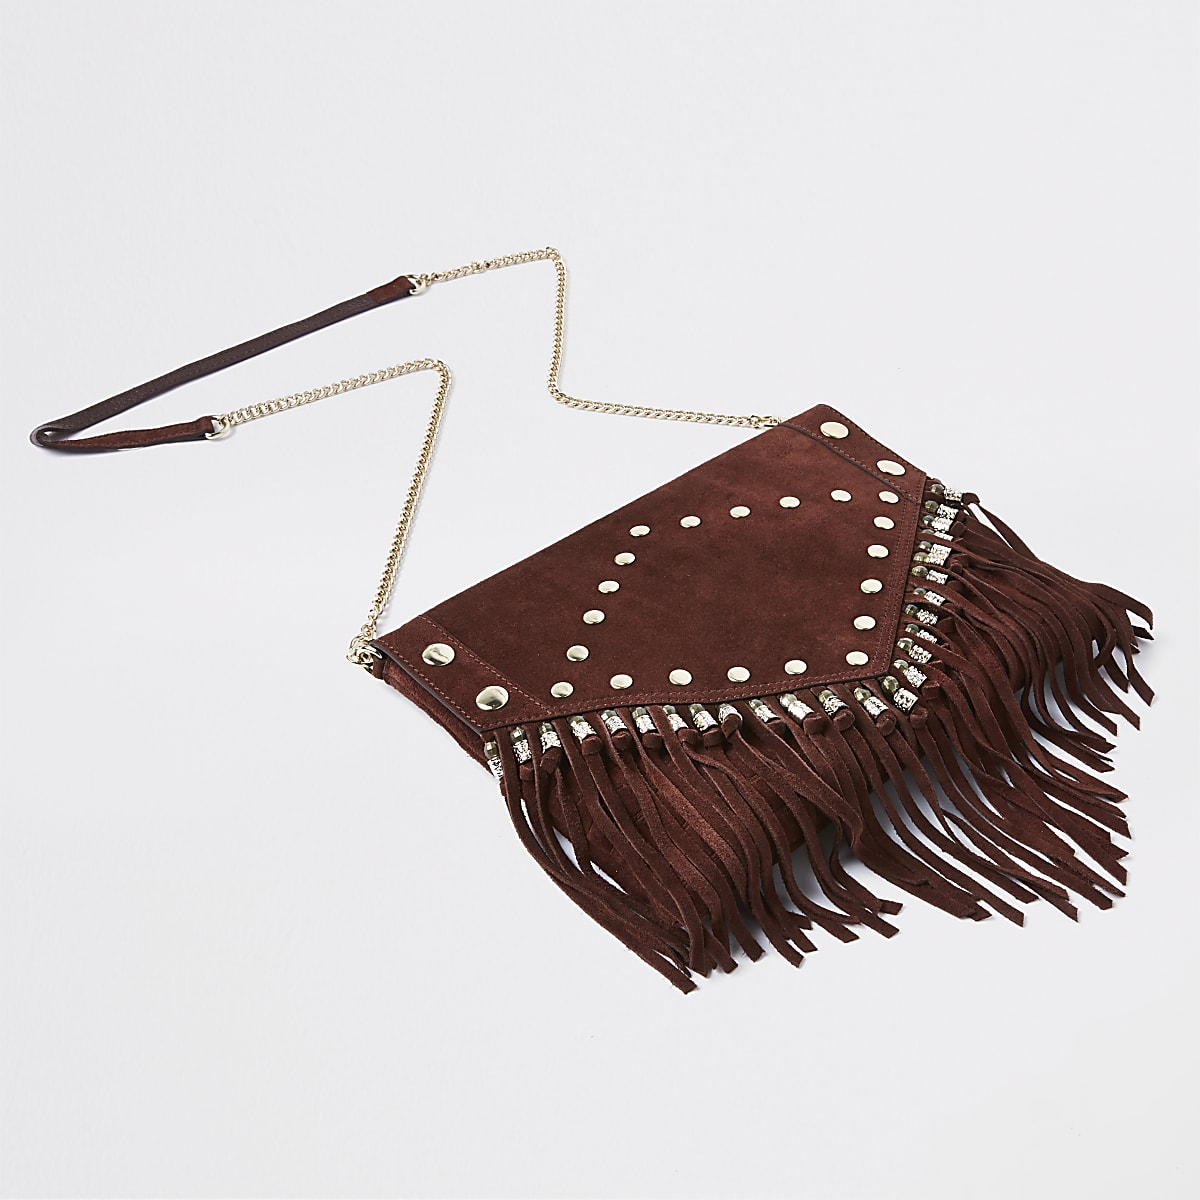 Red suede leather studded tassel clutch bag